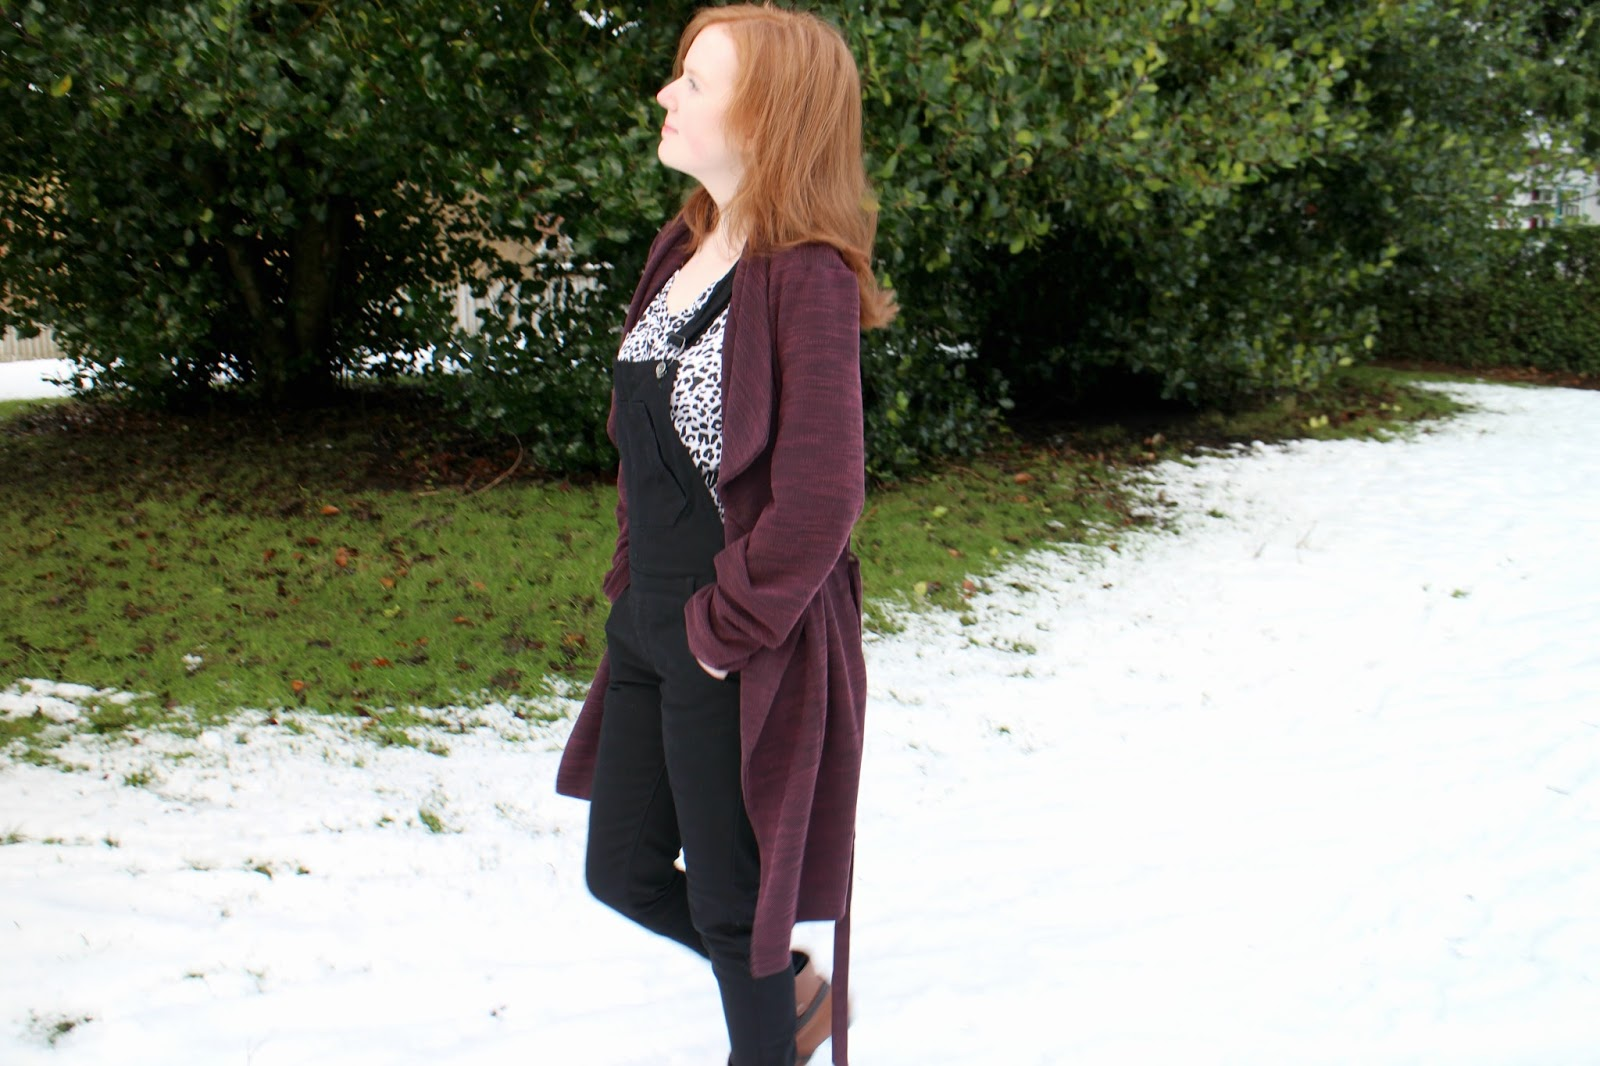 Redhead Scottish Fashion Blogger